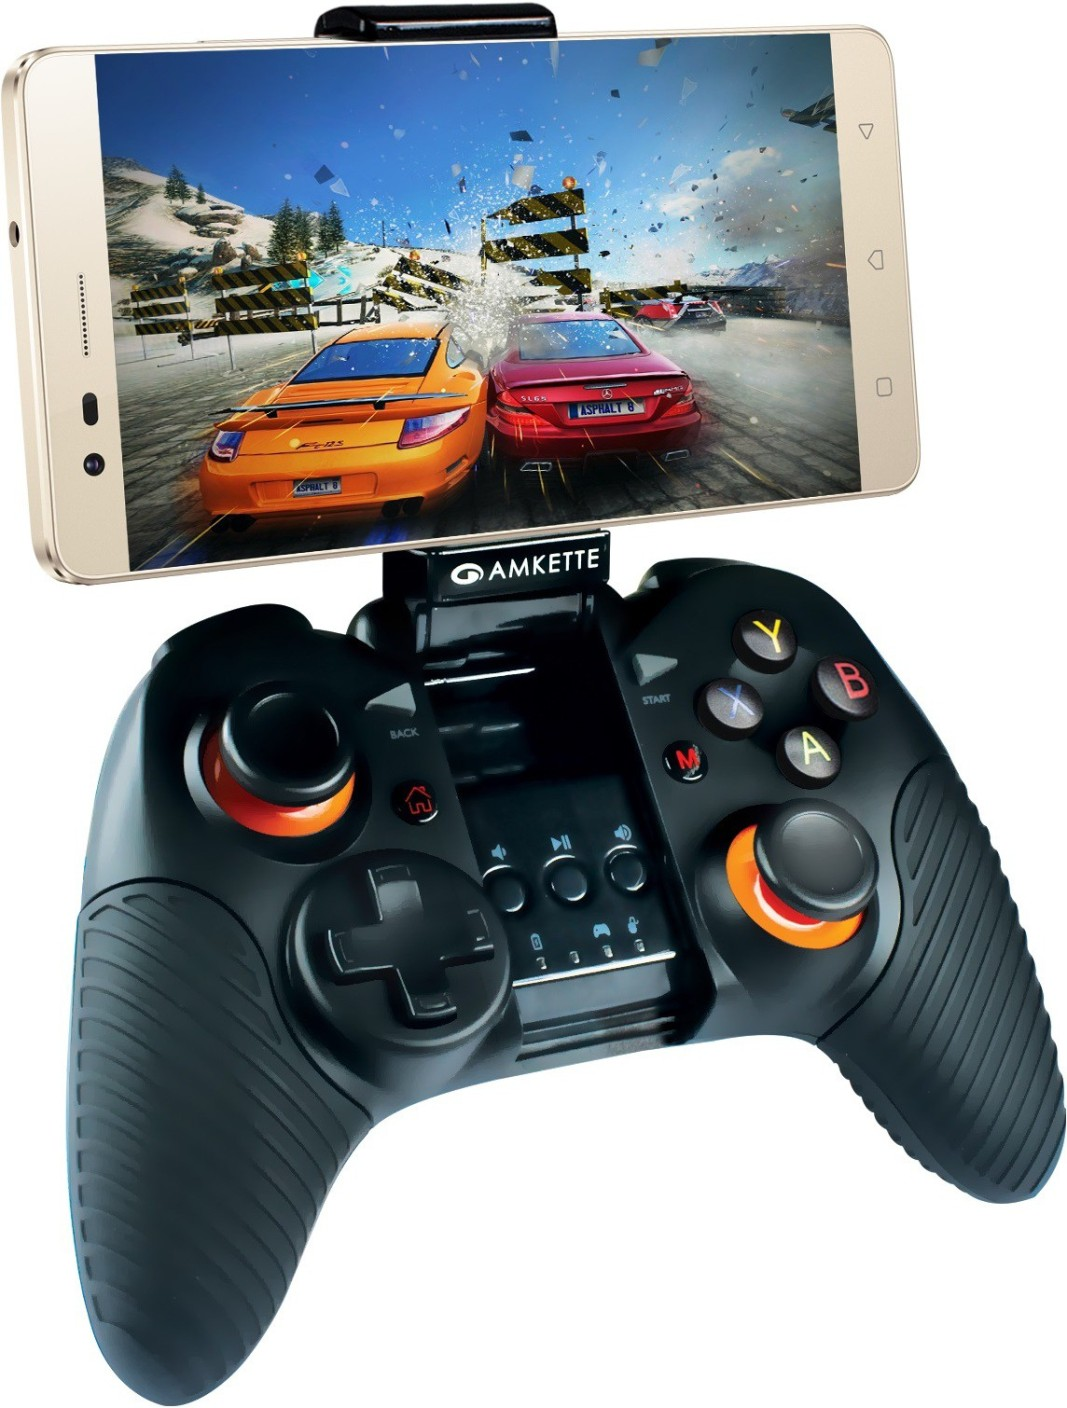 Amkette Evo Gamepad Pro 2 Wireless Controller For Android